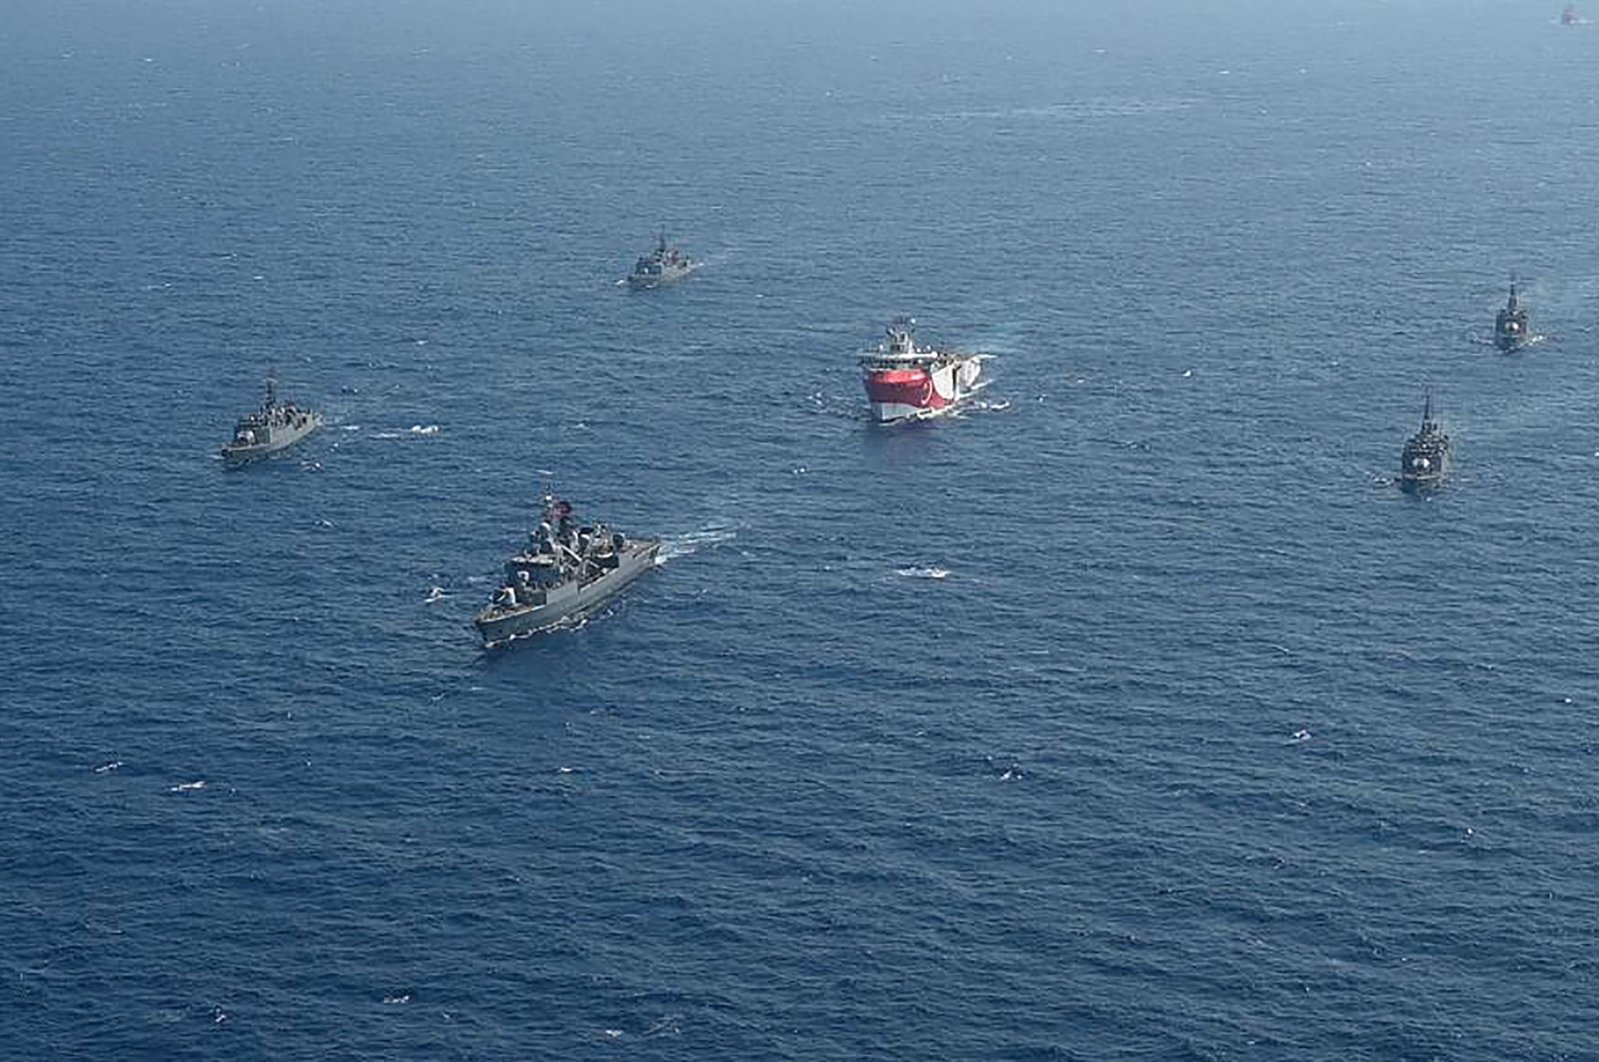 The Turkish seismic research vessel Oruç Reis is escorted by Turkish naval ships in the Mediterranean Sea off Antalya, Turkey, Aug. 10, 2020. (AFP Photo)